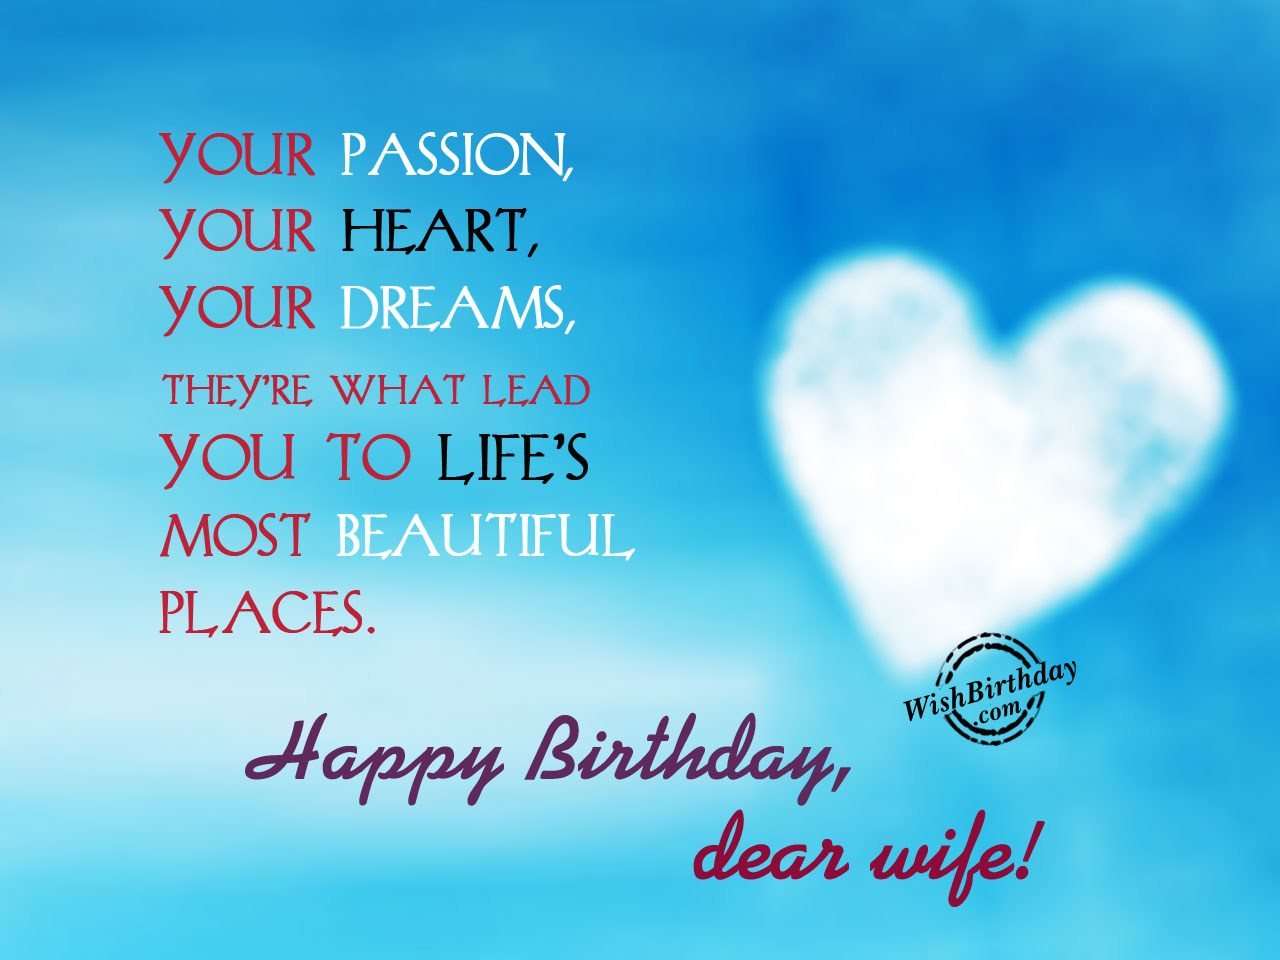 Birthday Wishes For Wife Birthday Images Pictures – Wife Birthday Greetings